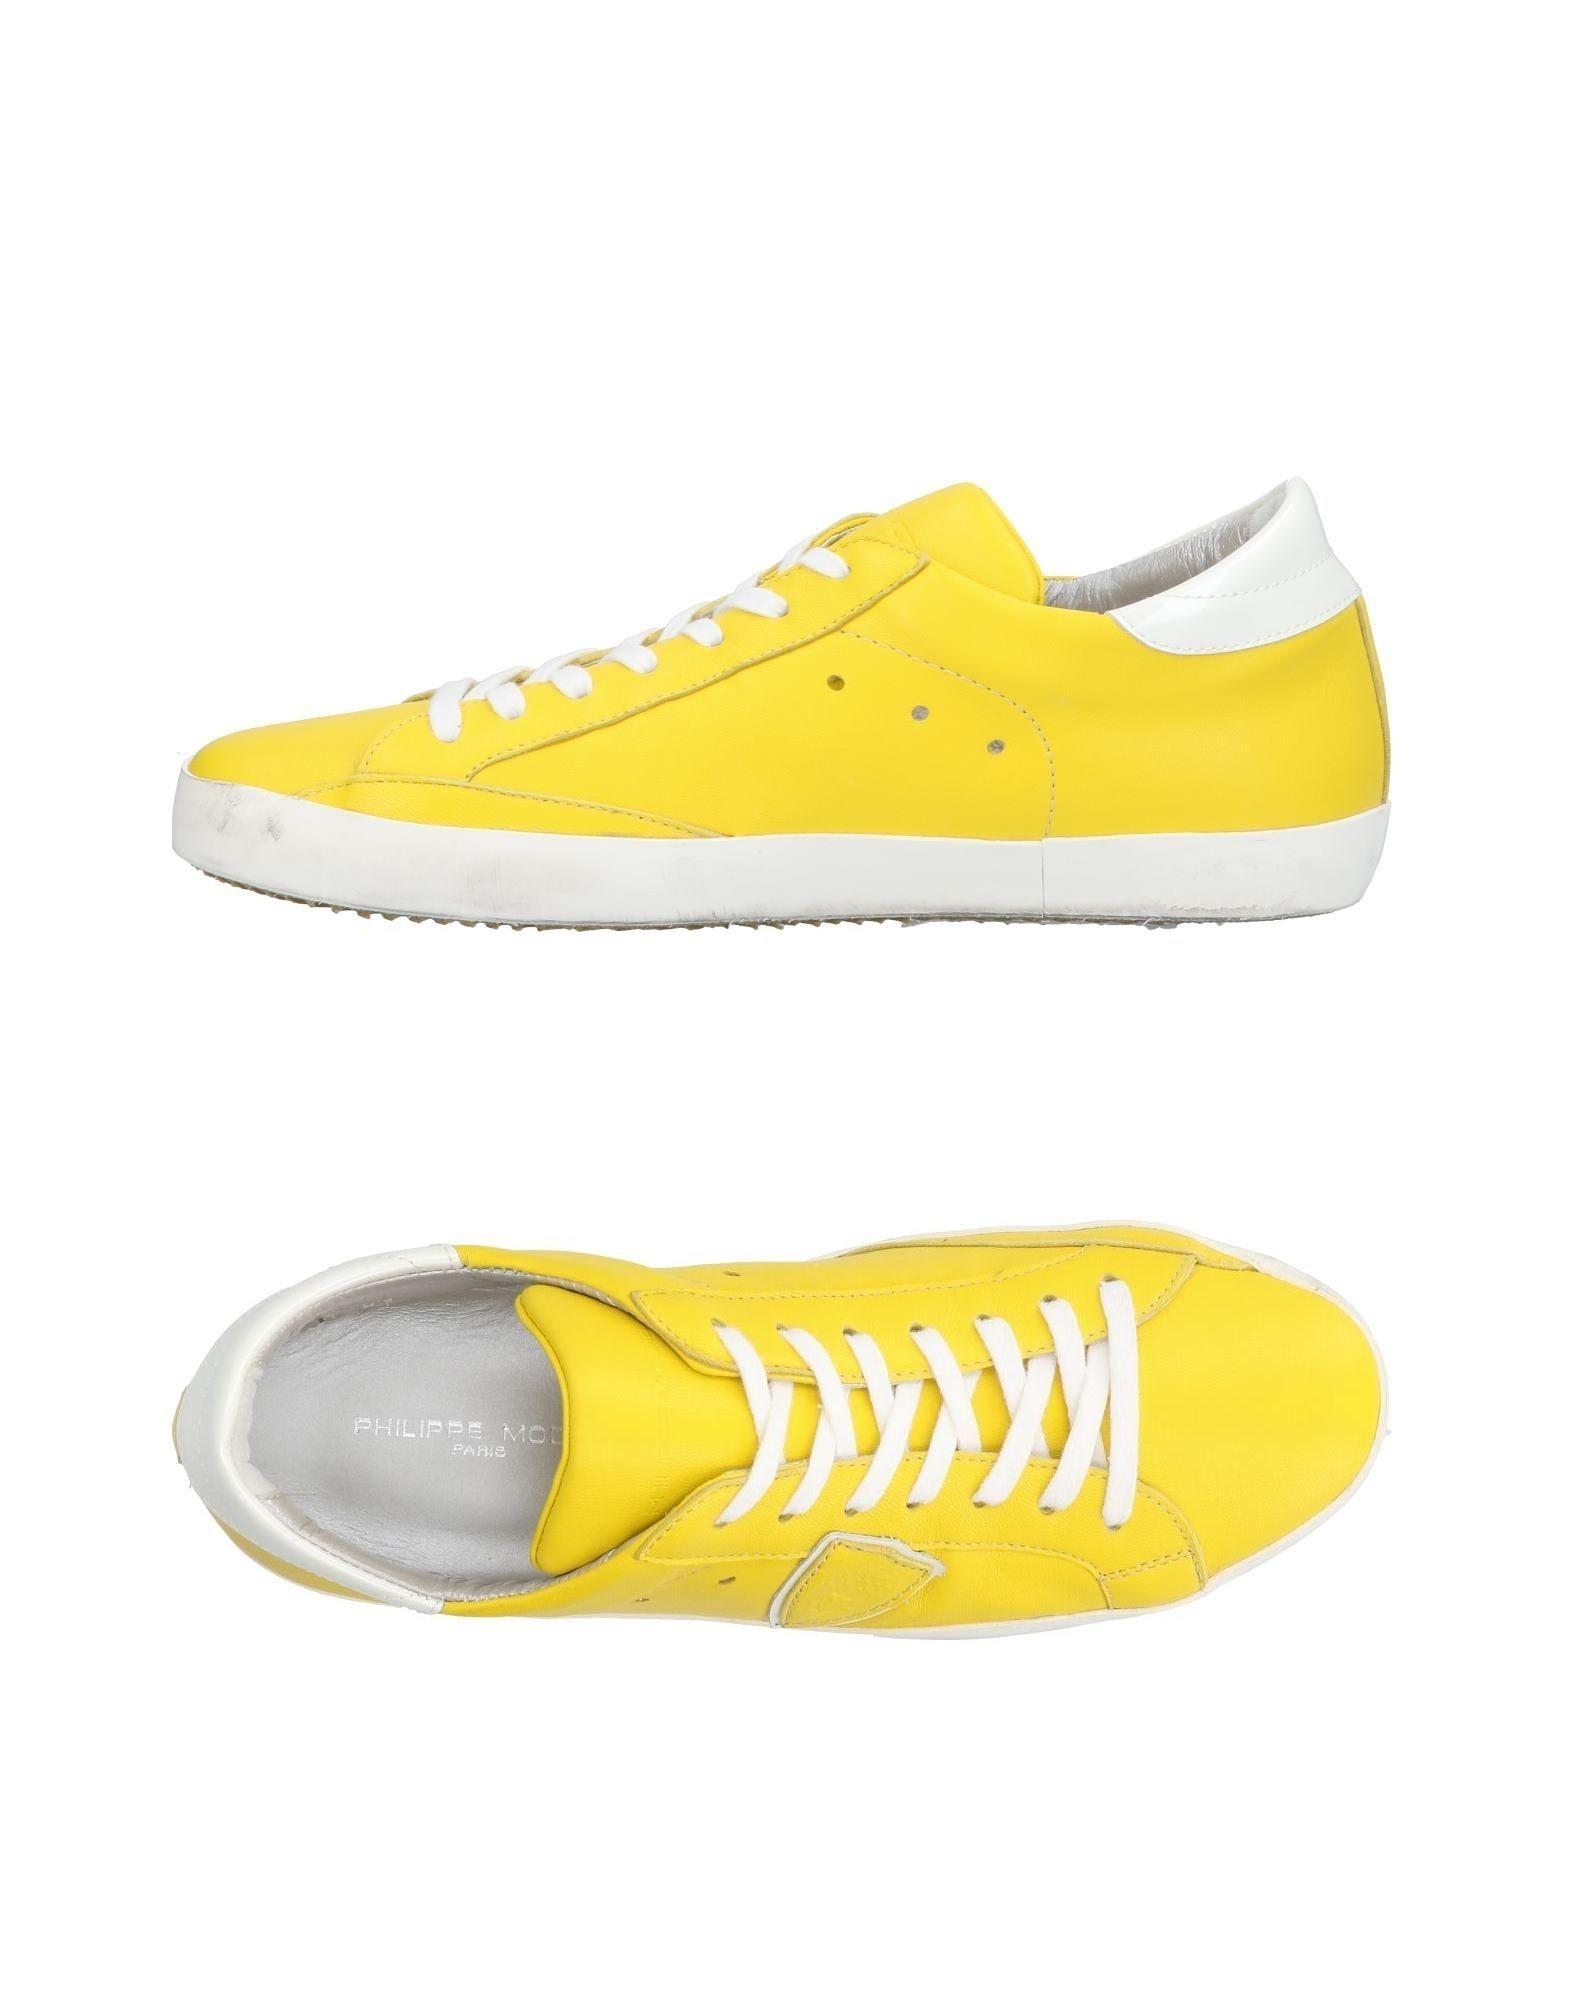 Philippe Model Sneakers In Yellow